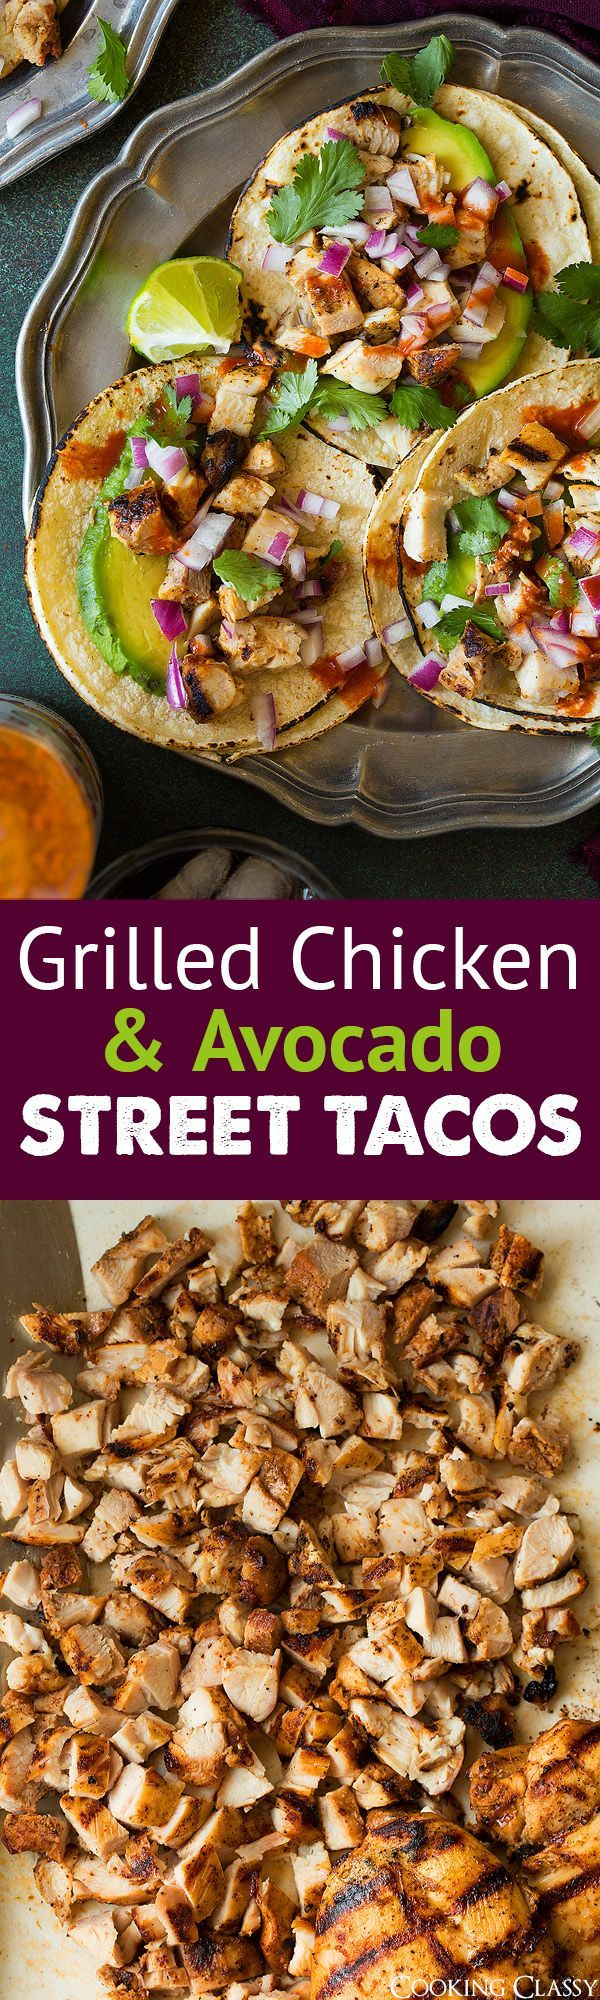 Grilled Chicken and Avocado Street Tacos - Cooking Classy: (Simple Healthy Recipes)